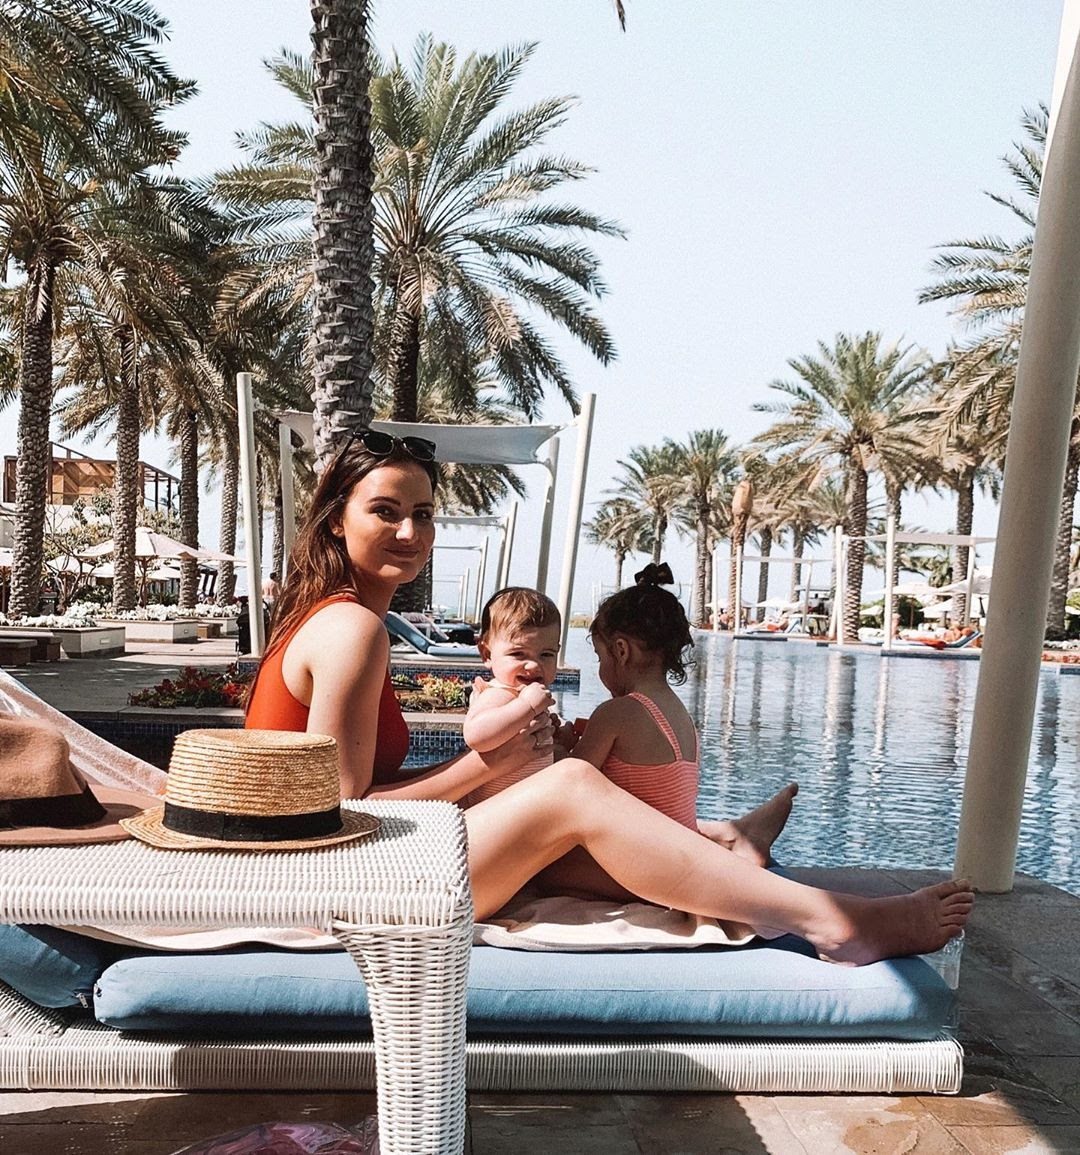 Moments to treasure.    amber_girelle at @ParkHyatt Abu Dhabi  #InAbuDhabi #SaadiyatIsland https://t.co/zD6FYvcgtL